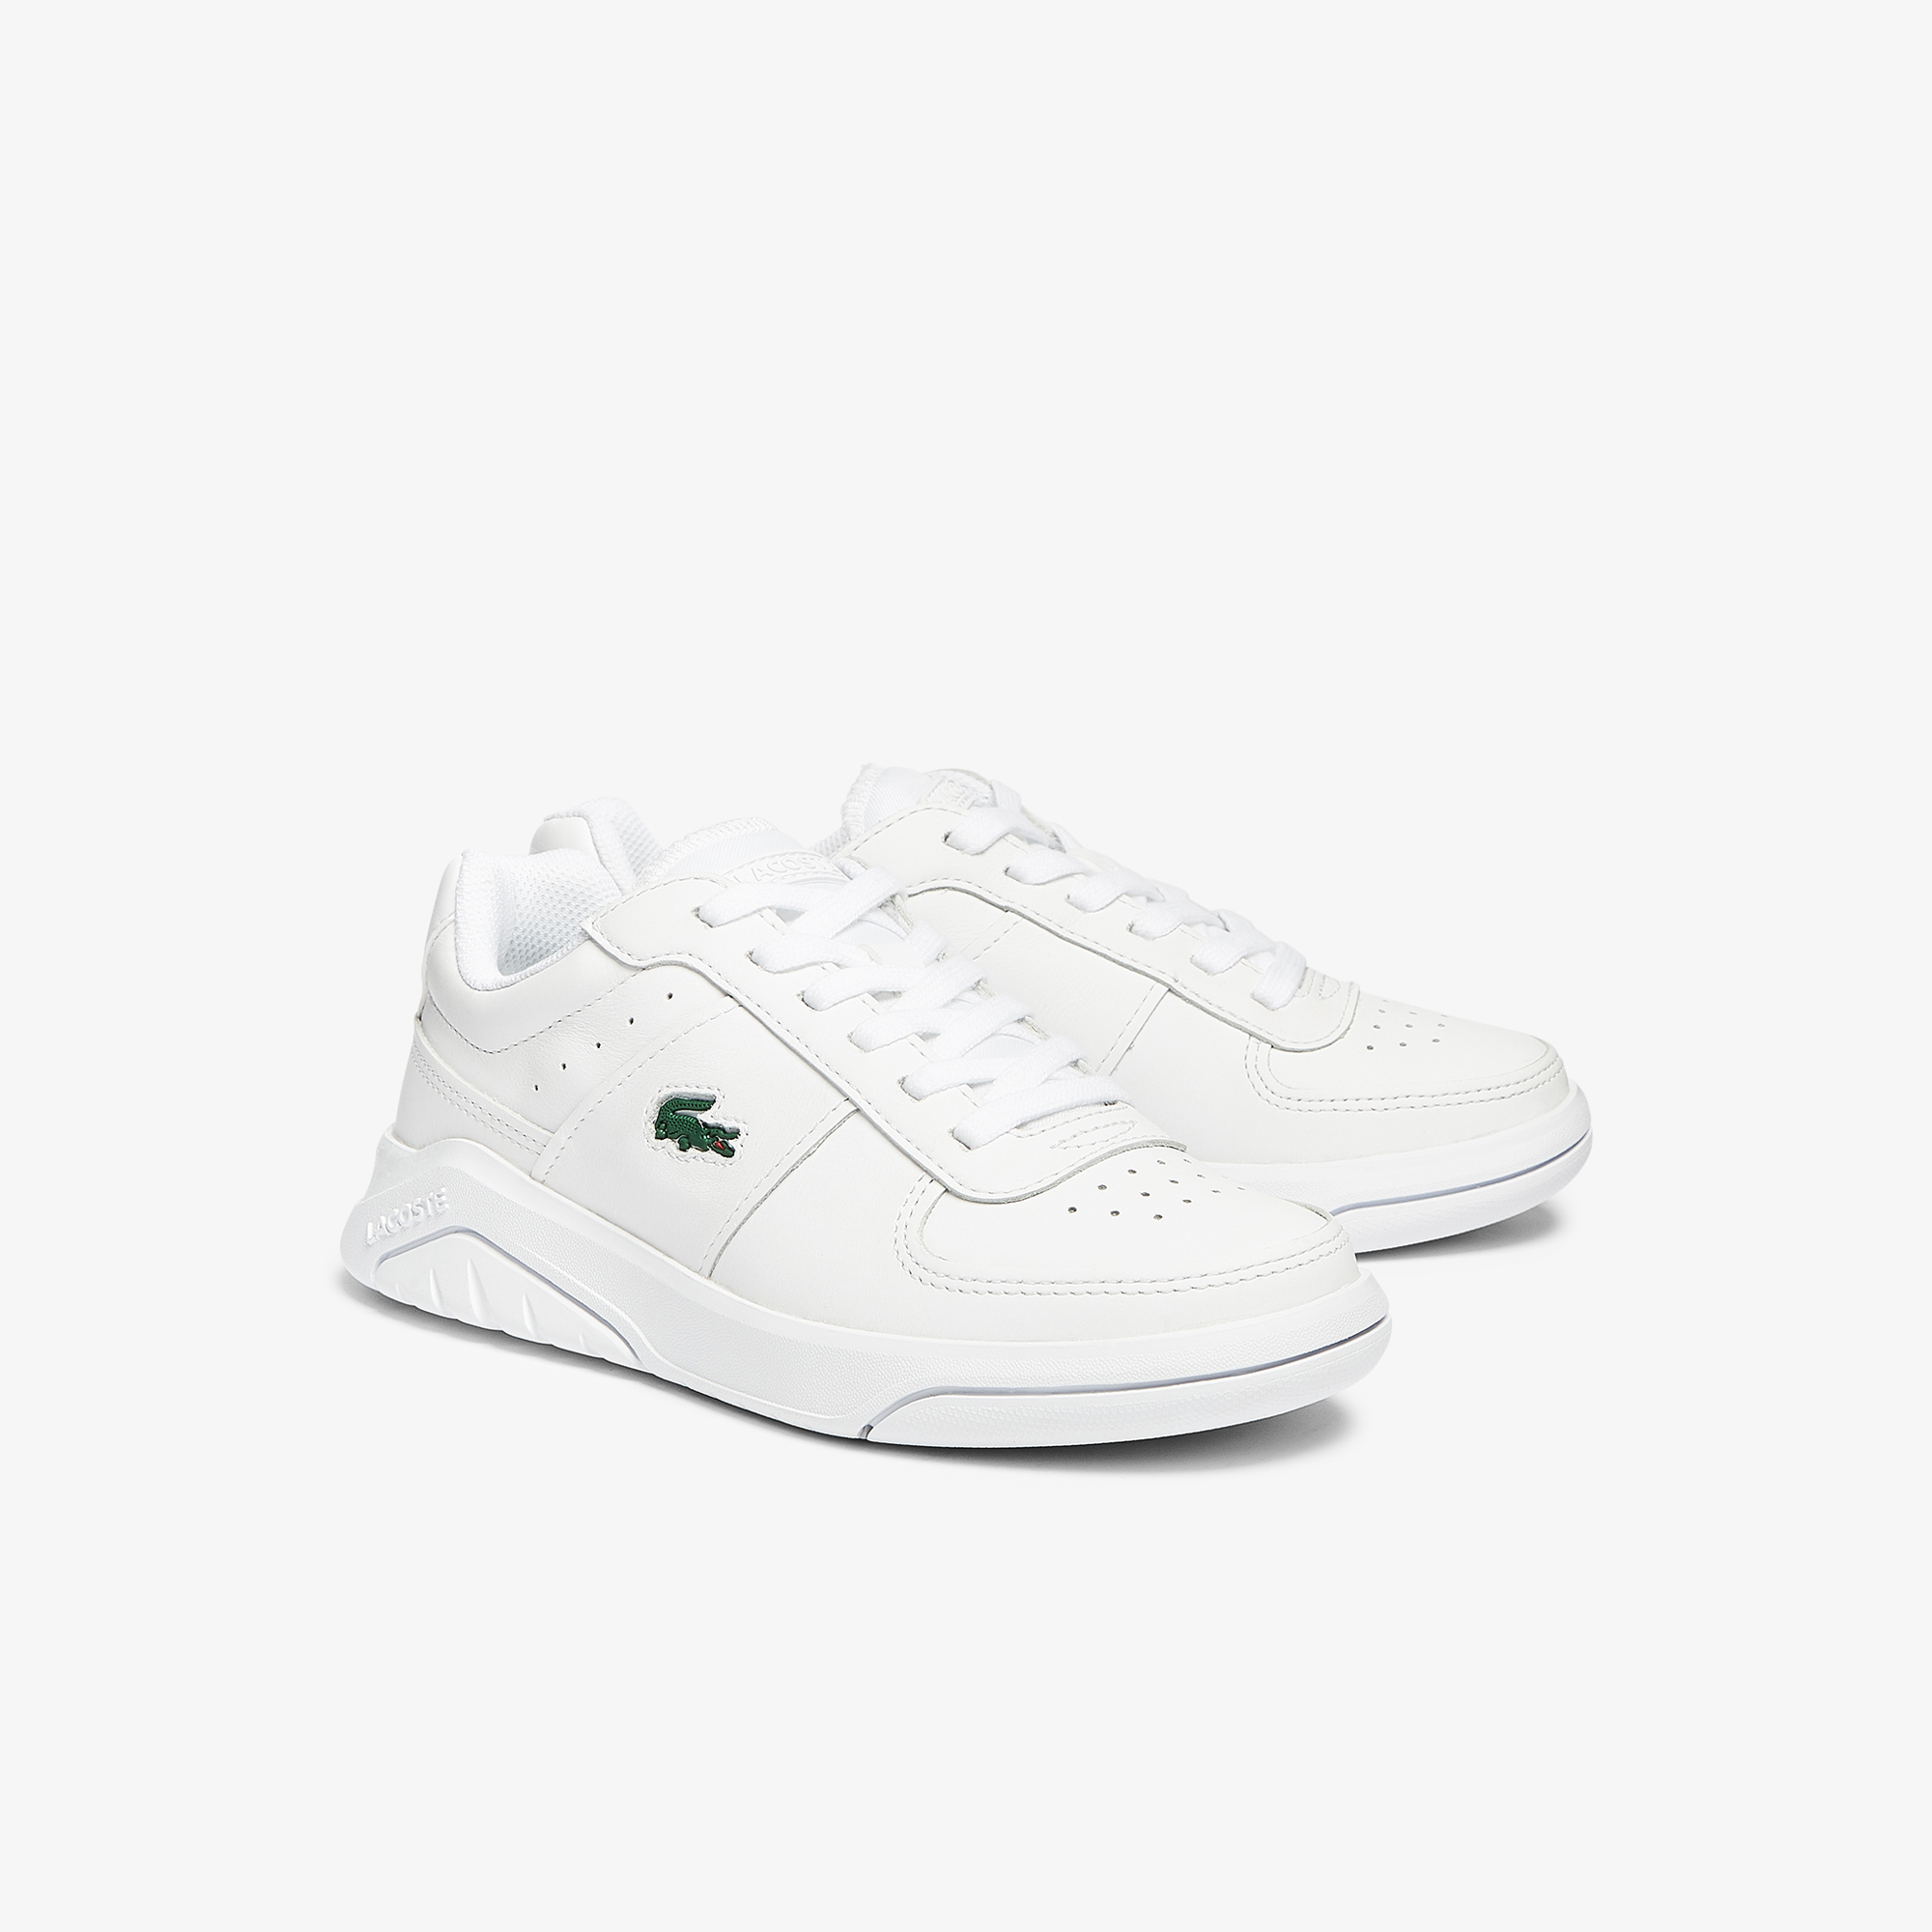 Lacoste Women's Game Advance 0721 1 Sfa Shoes